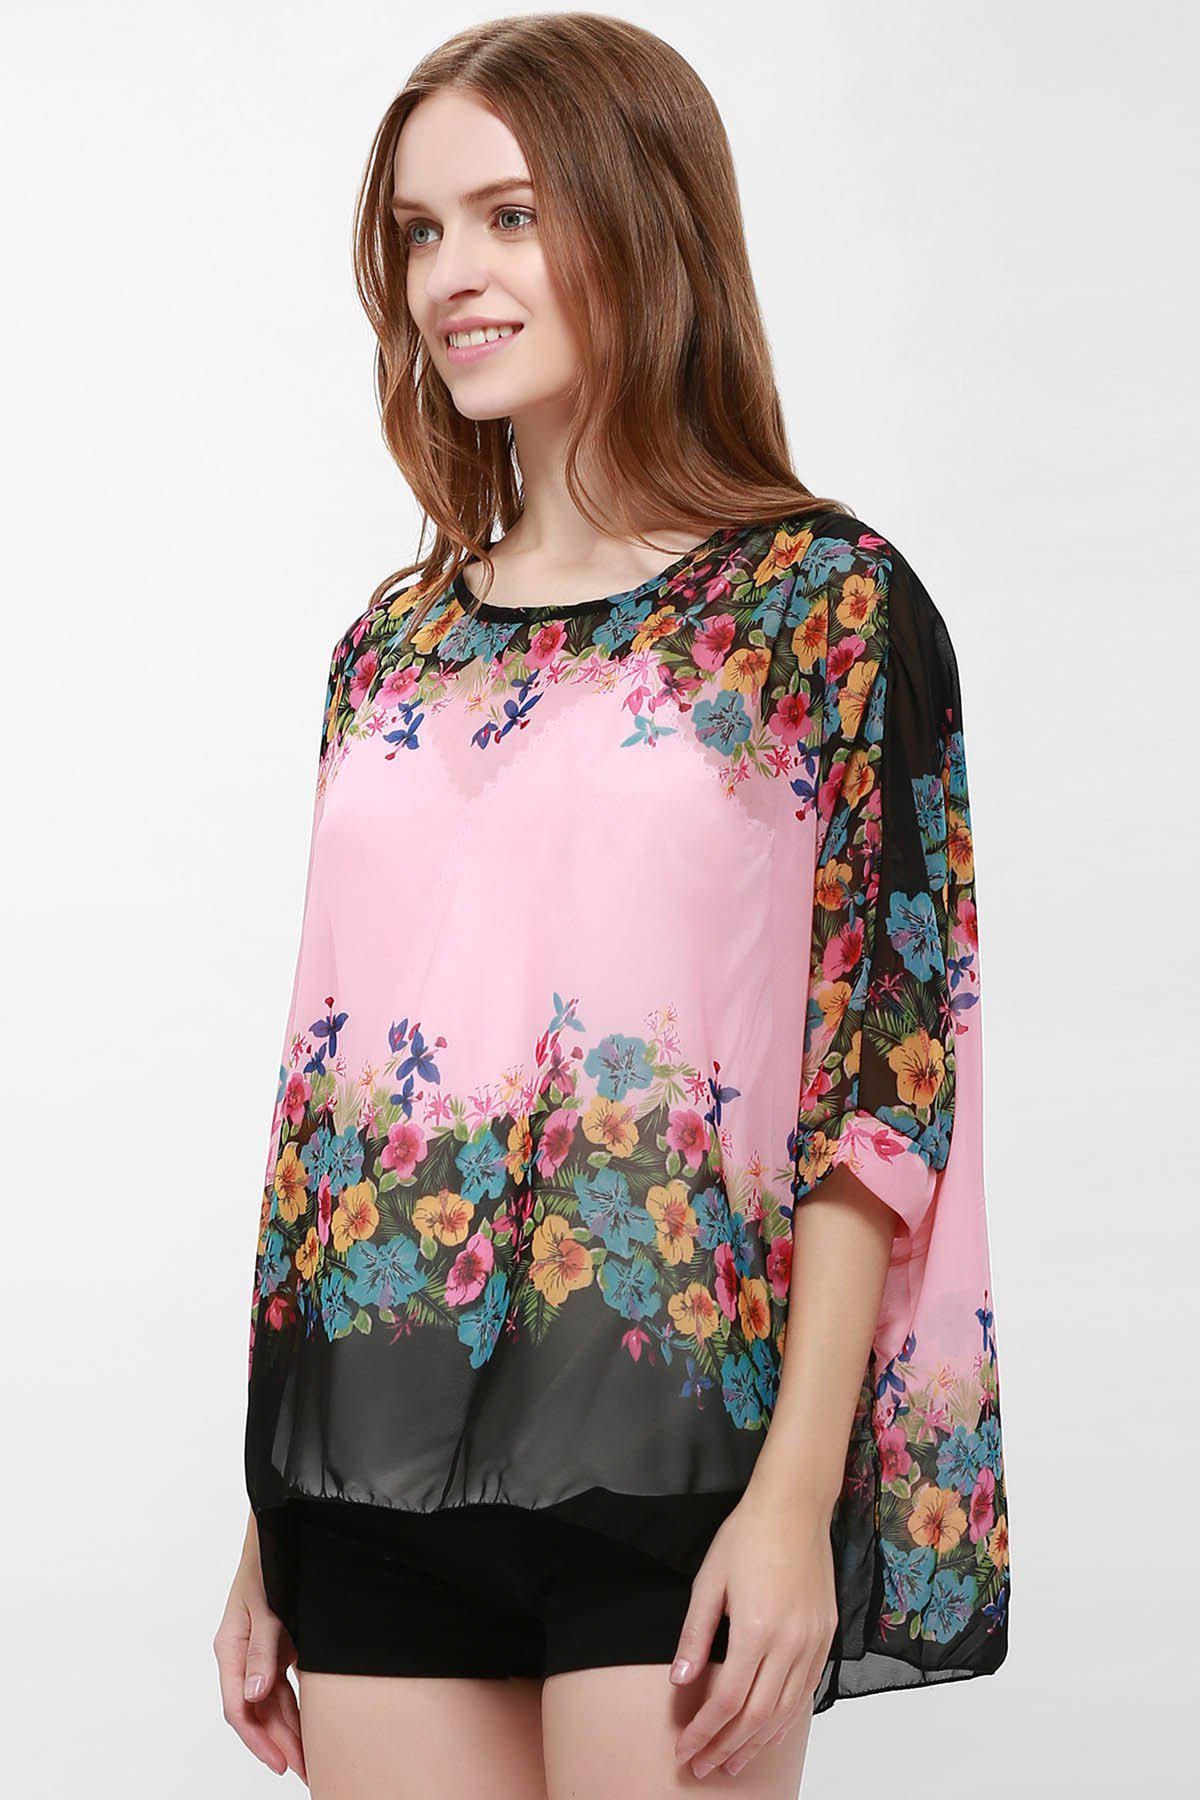 Loose-Fitting Bat-Wing Floral Print Bohemia Style Scoop Neck Women's Blouse - PINK L